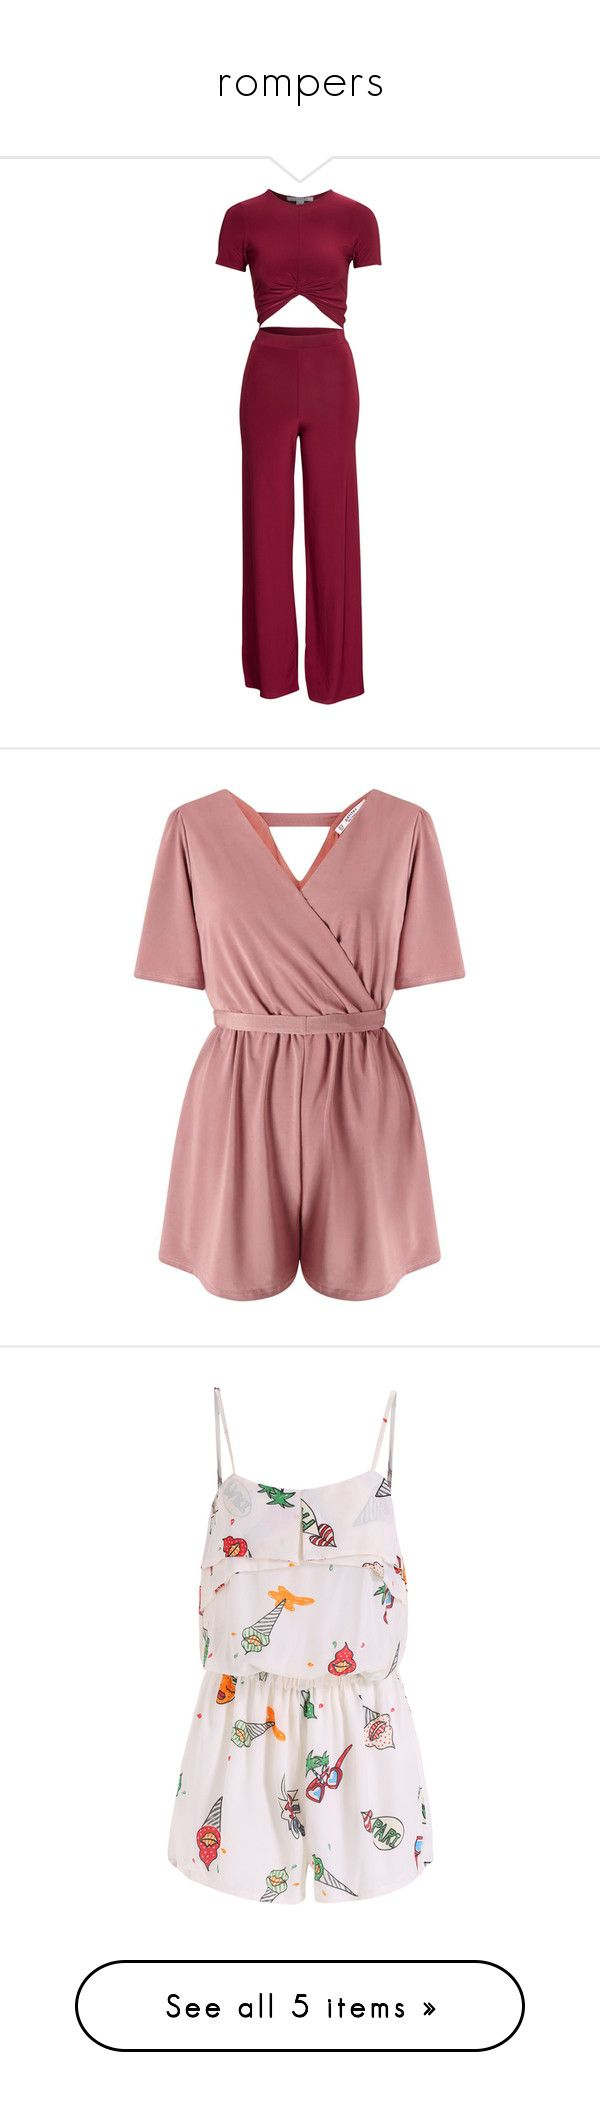 """rompers"" by x2013harrystylesx ❤ liked on Polyvore featuring romper, two piece, burgundy, party dresses, womens-fashion, high waisted two piece, nly trend, jumpsuits, rompers and dresses"